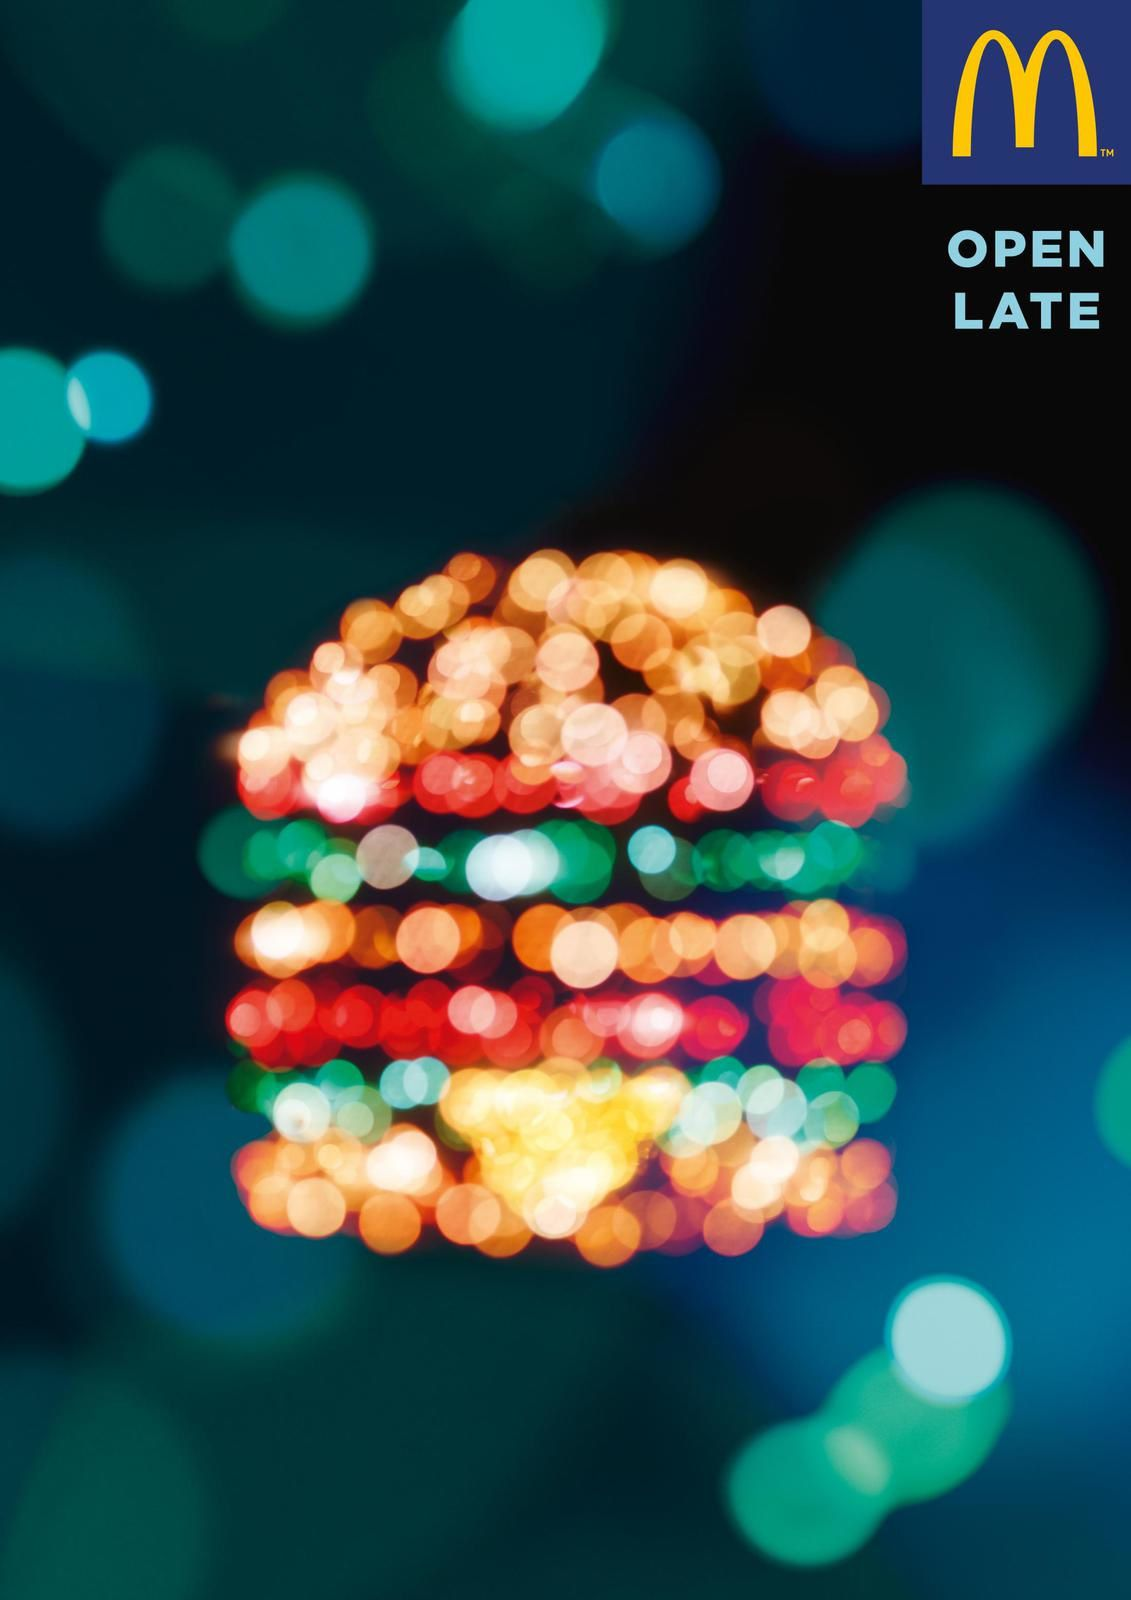 "McDonald's - ""Open Late"" I Agence : TBWA\Paris, France (septembre 2017)"